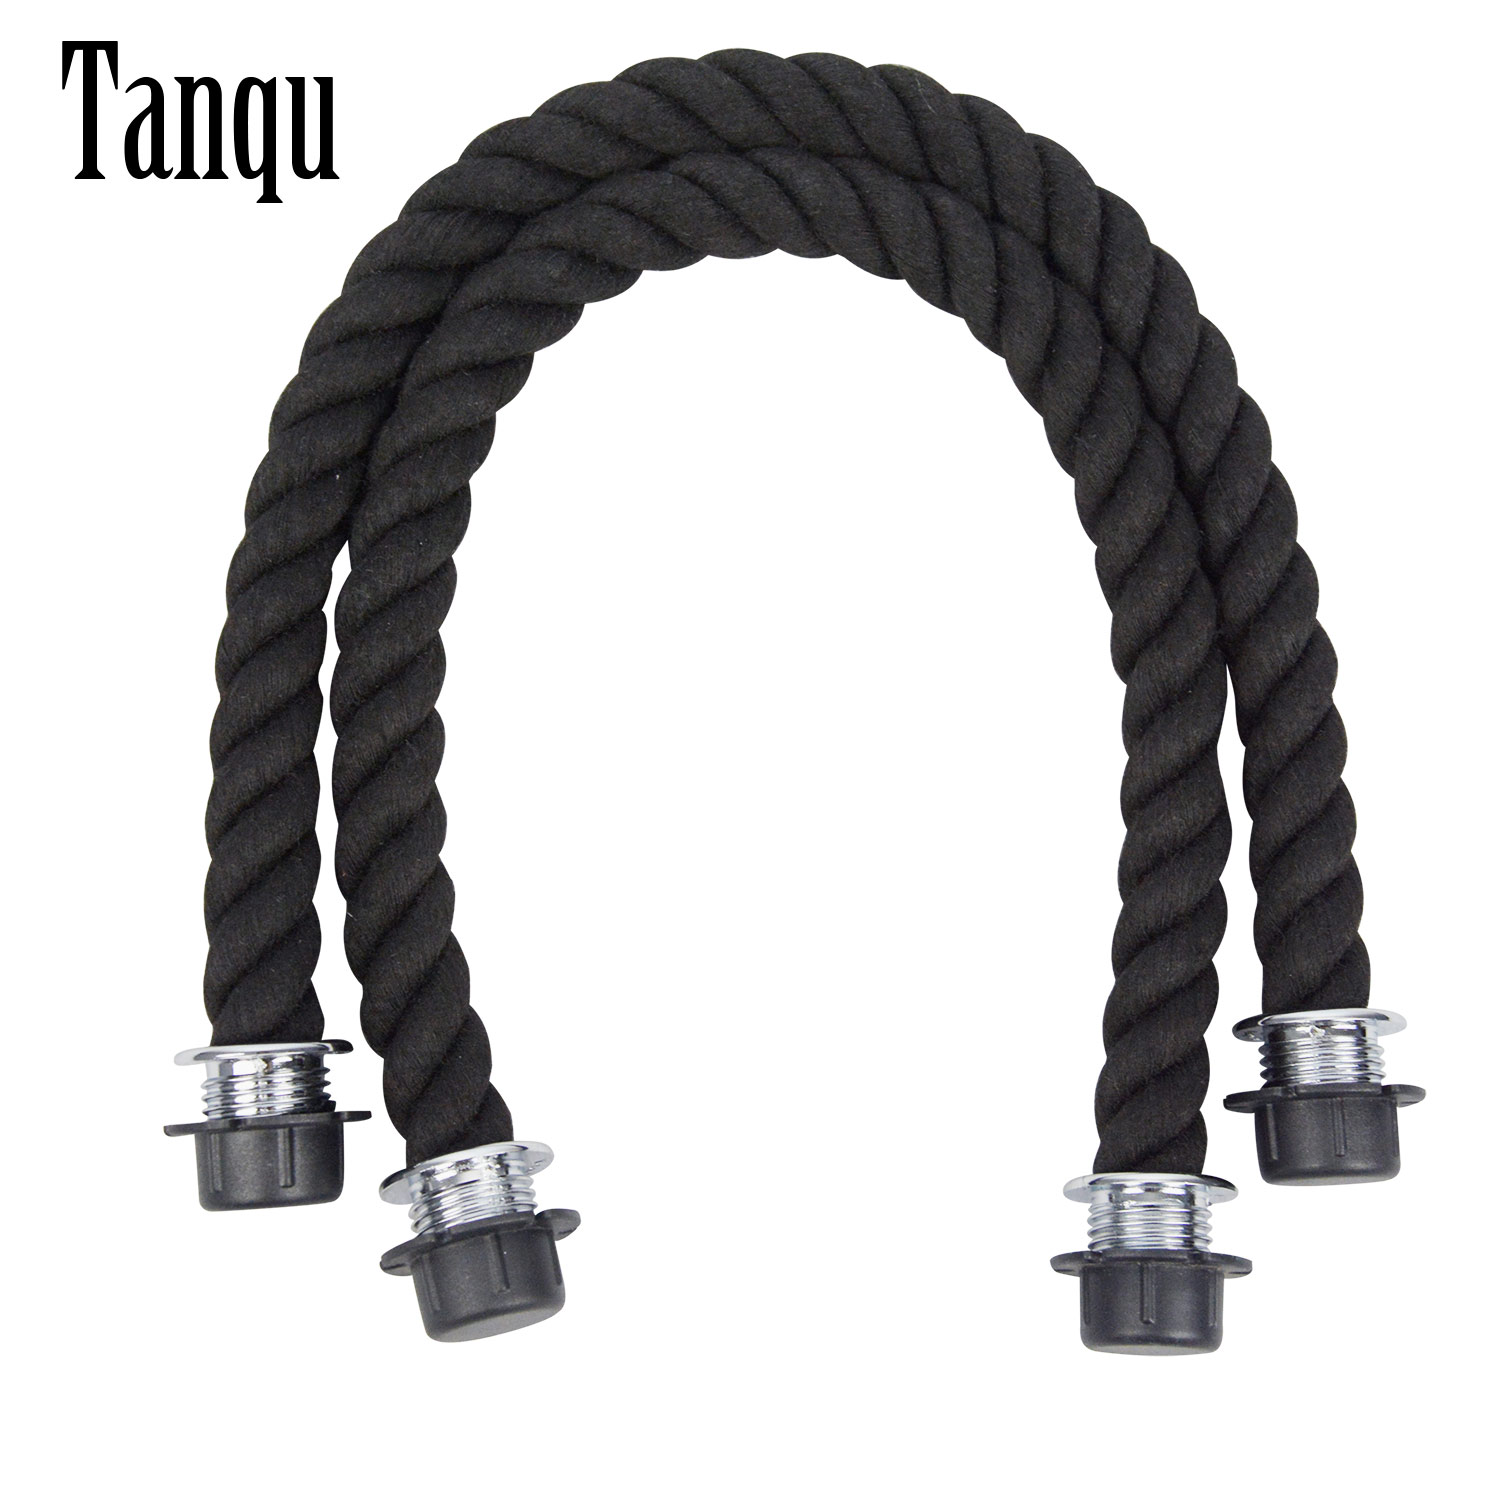 2019 New Tanqu 1 Pair Long Short Black Natural Hemp Rope Handle For O Bag Obag Women Handbag Classic Mini EVA Bag